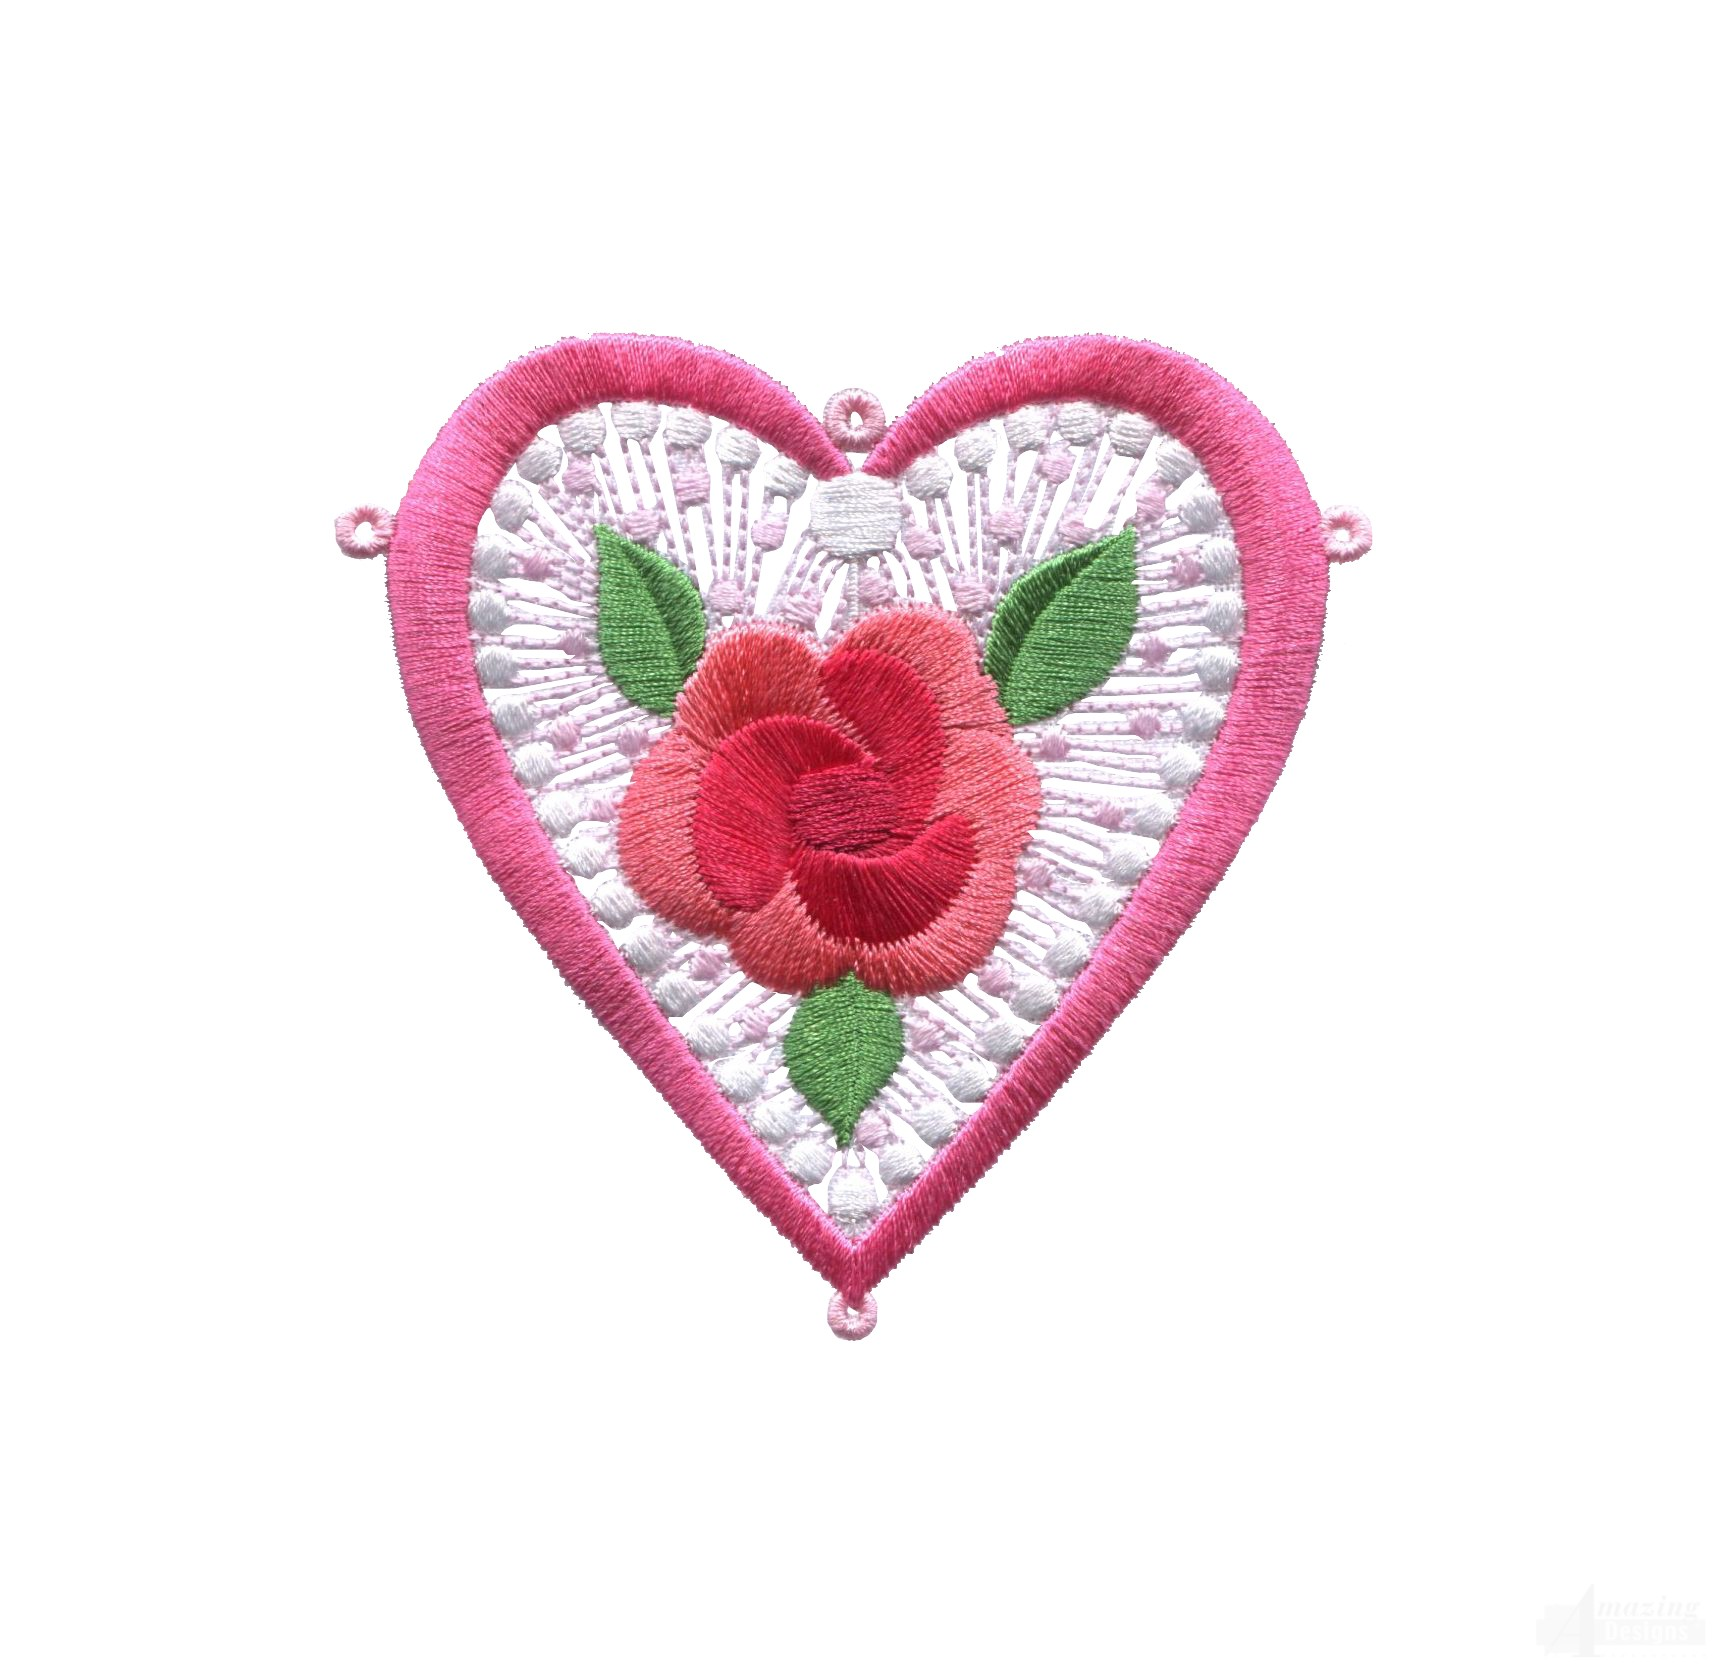 Rose lhrts heart embroidery design